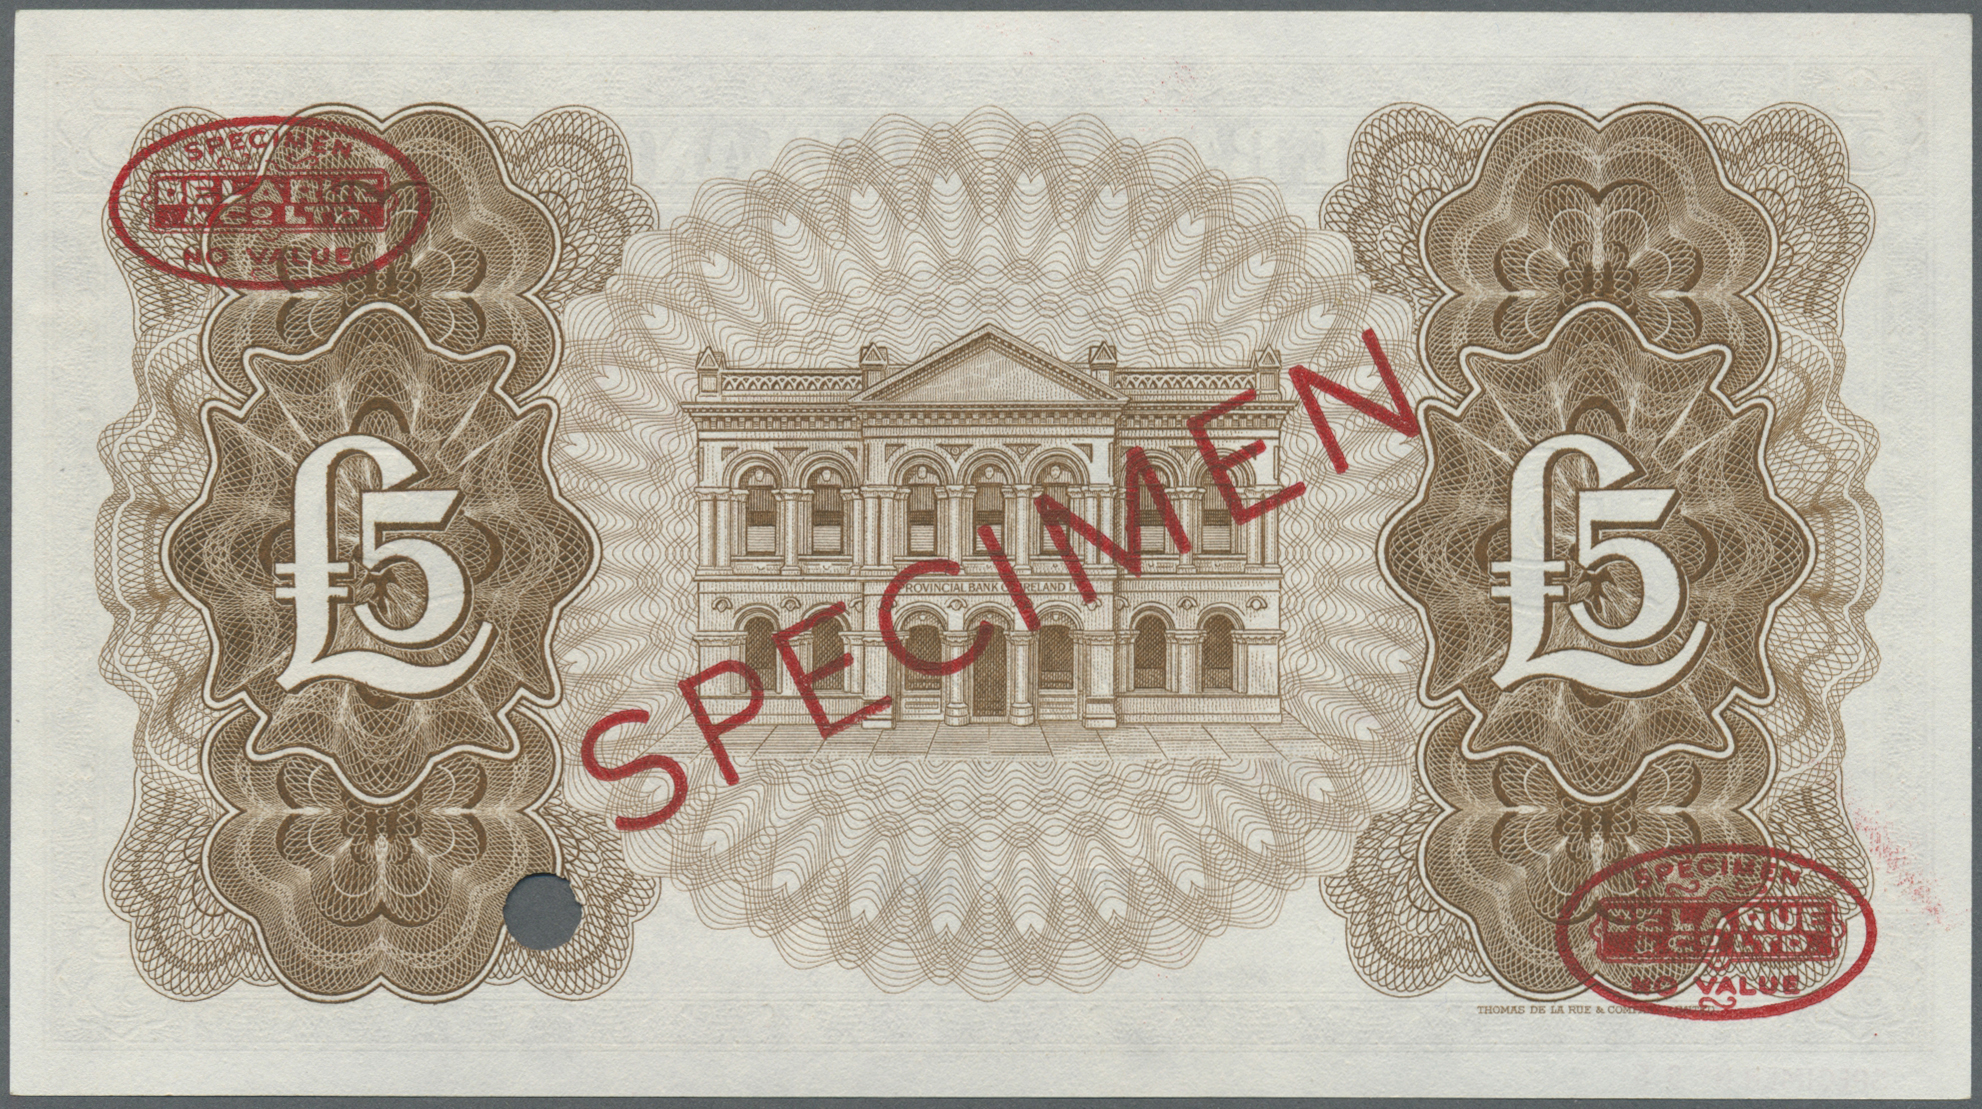 Lot 00567 - Northern Ireland / Nordirland | Banknoten  -  Auktionshaus Christoph Gärtner GmbH & Co. KG Sale #48 The Banknotes